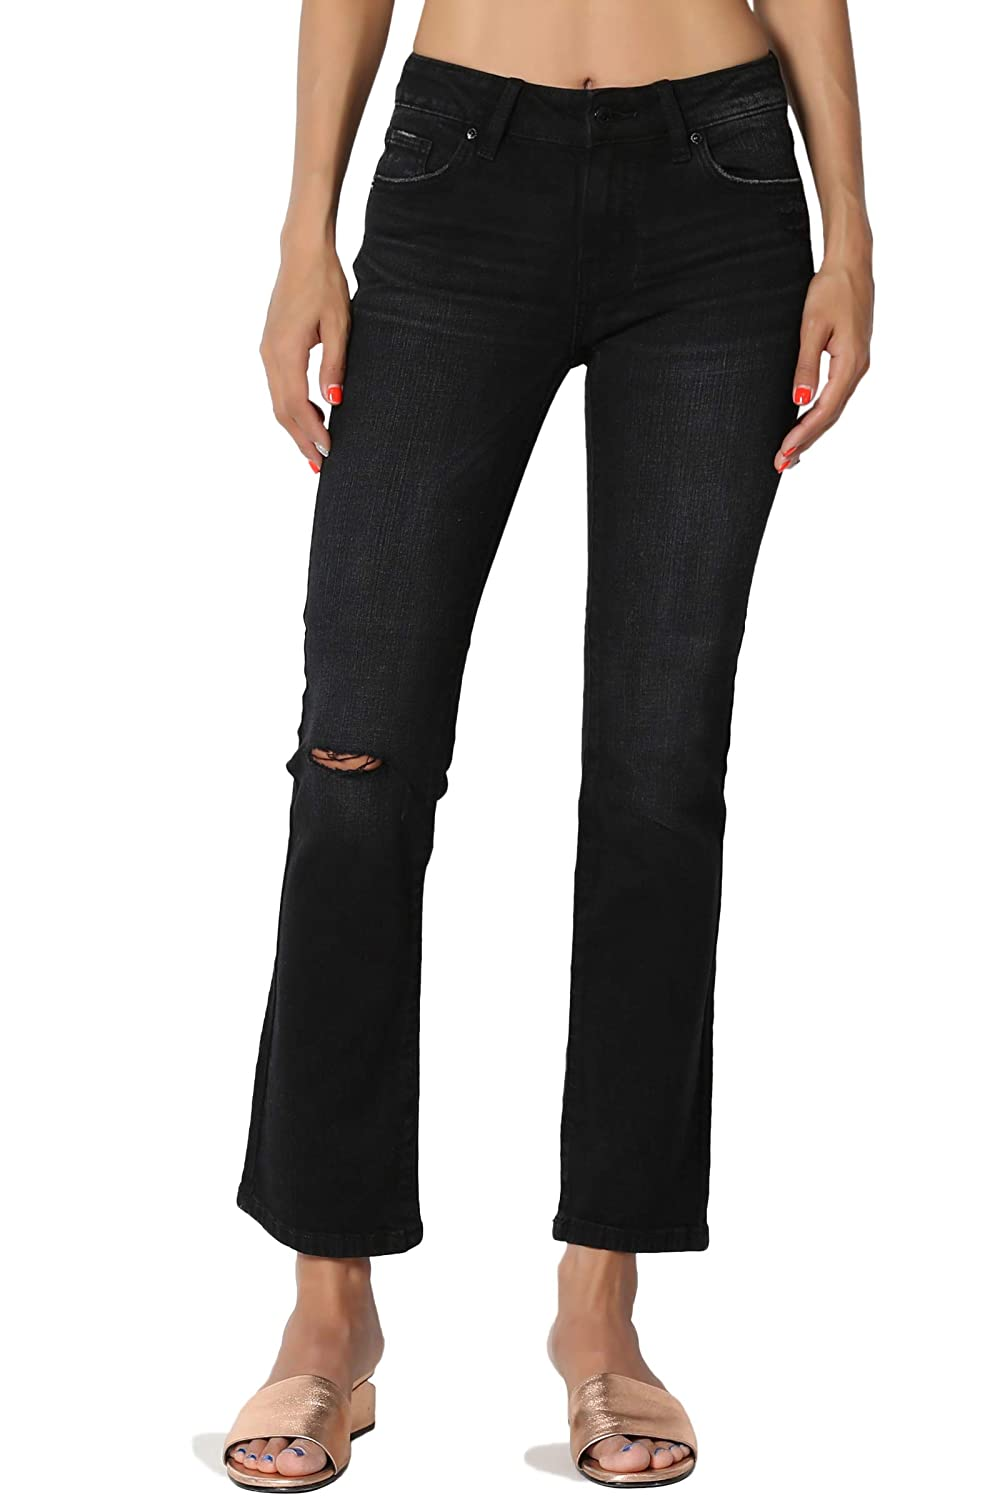 1a39e031112 Top 10 wholesale Womens Low Rise Flare Leg Jeans - Chinabrands.com